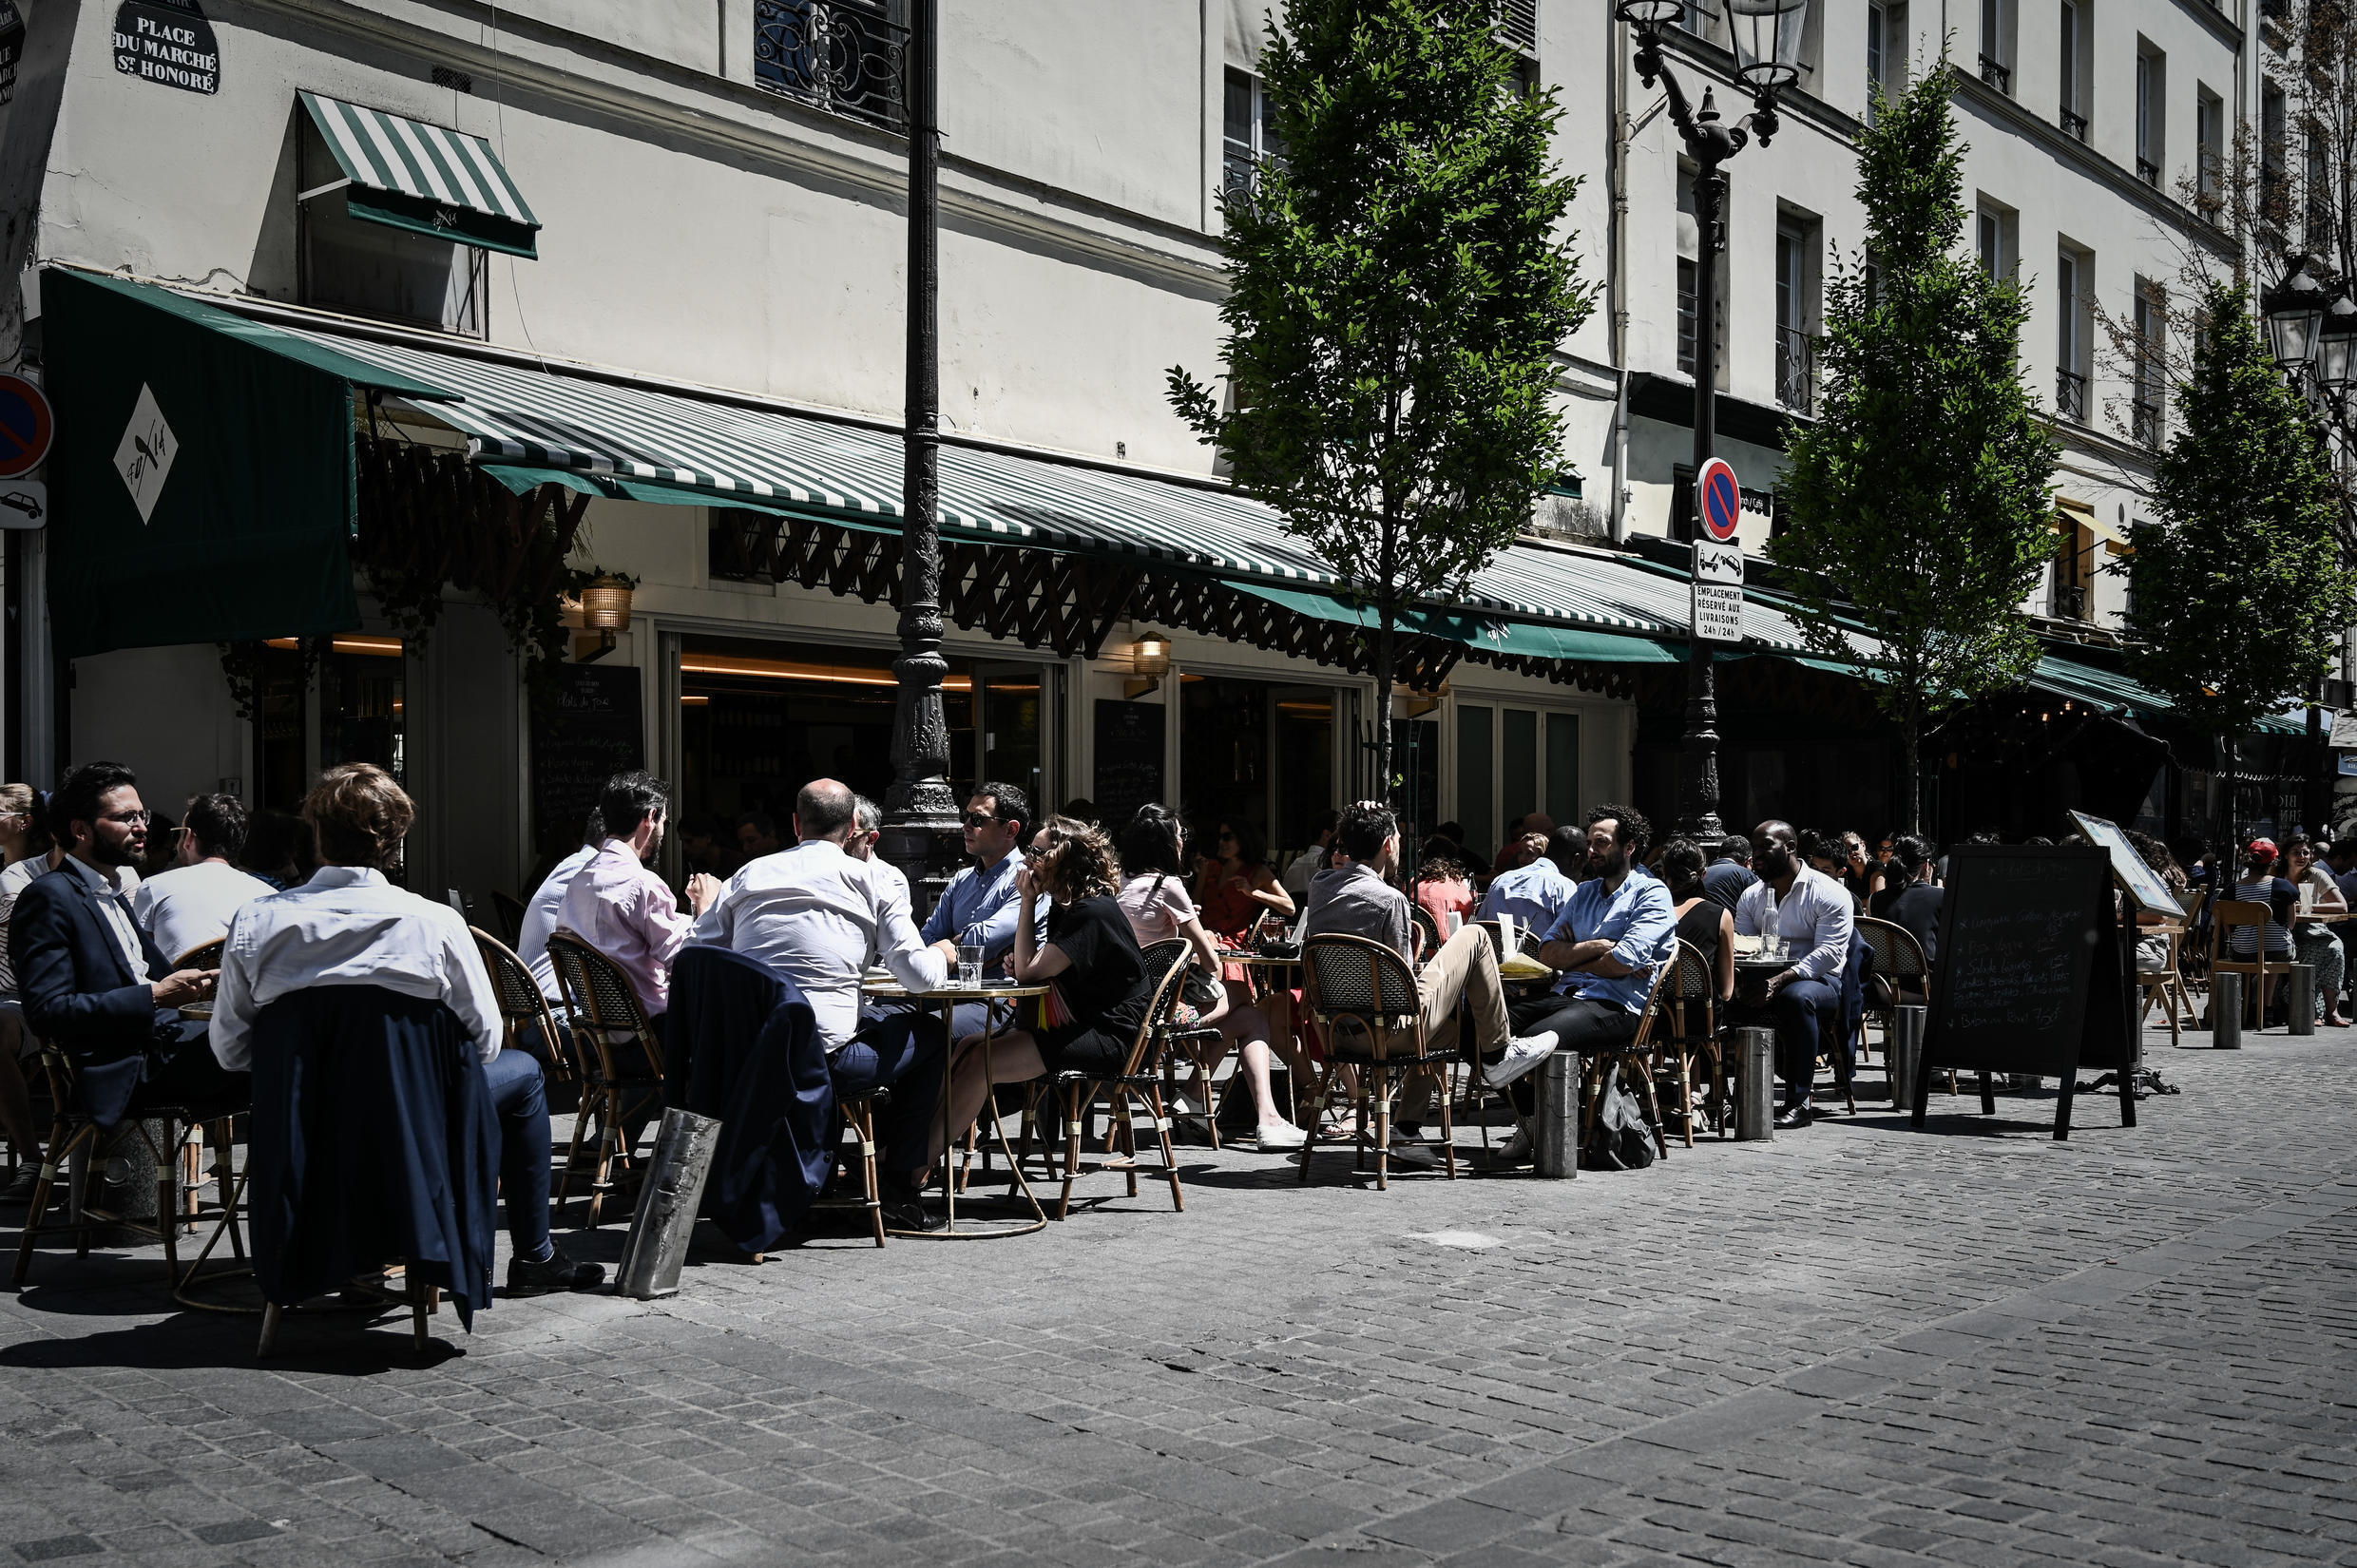 Customers sit at the terrasse of a restaurant in Paris on June 2, 2020, as cafes and restaurants reopen in France, while the country eases lockdown measures taken to curb the spread of Covid-19.